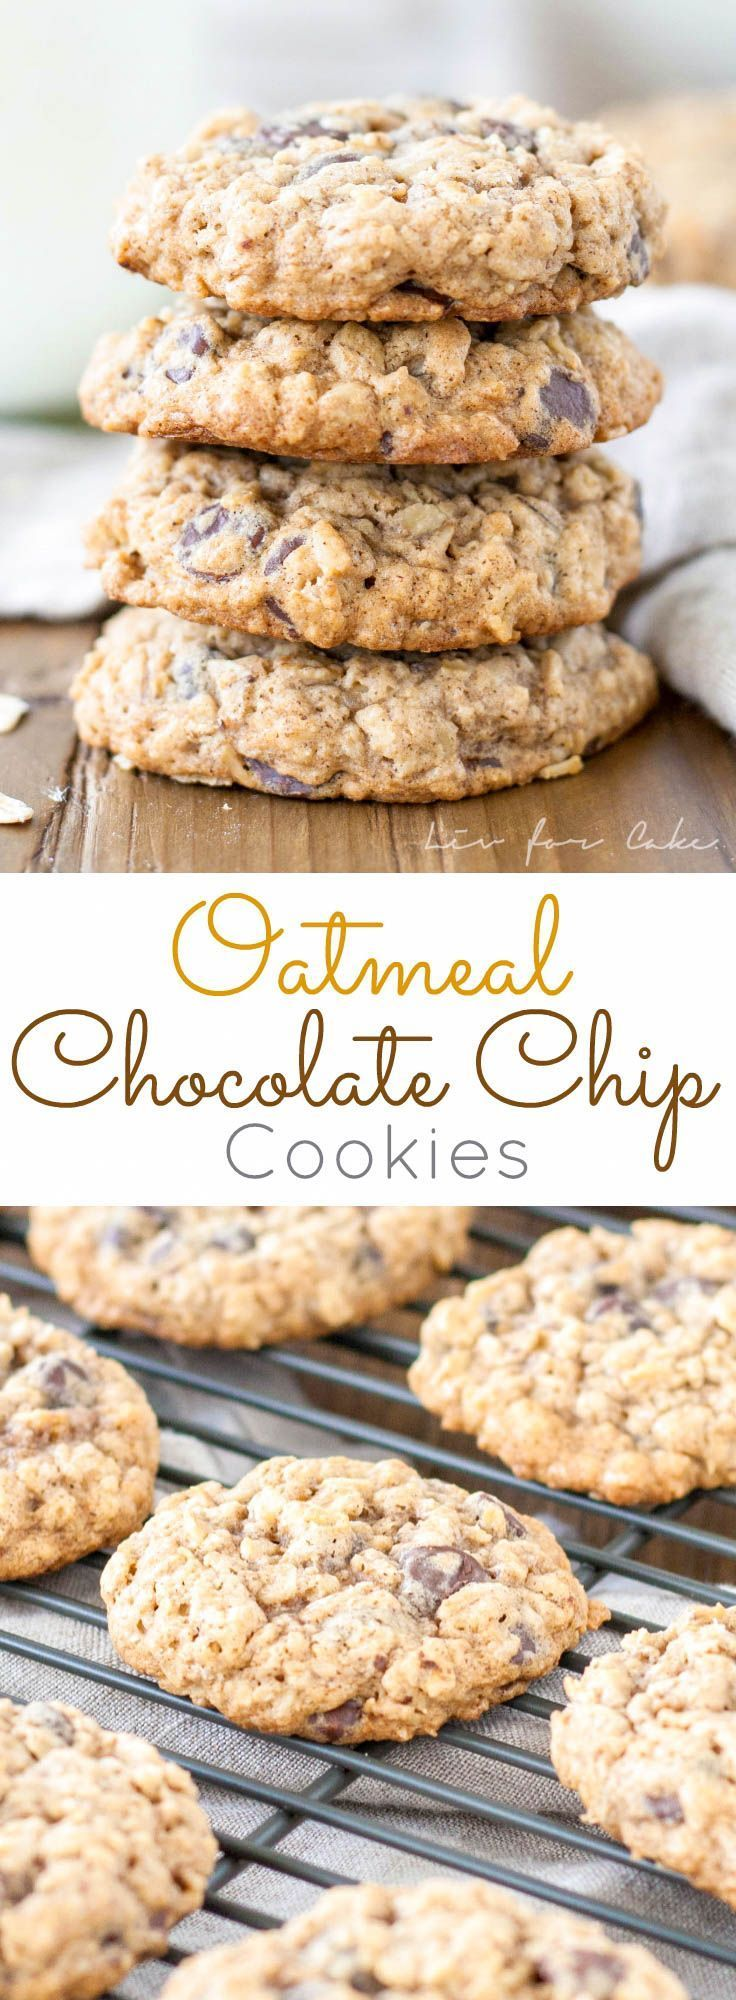 Soft and chewy oatmeal chocolate chip cookies